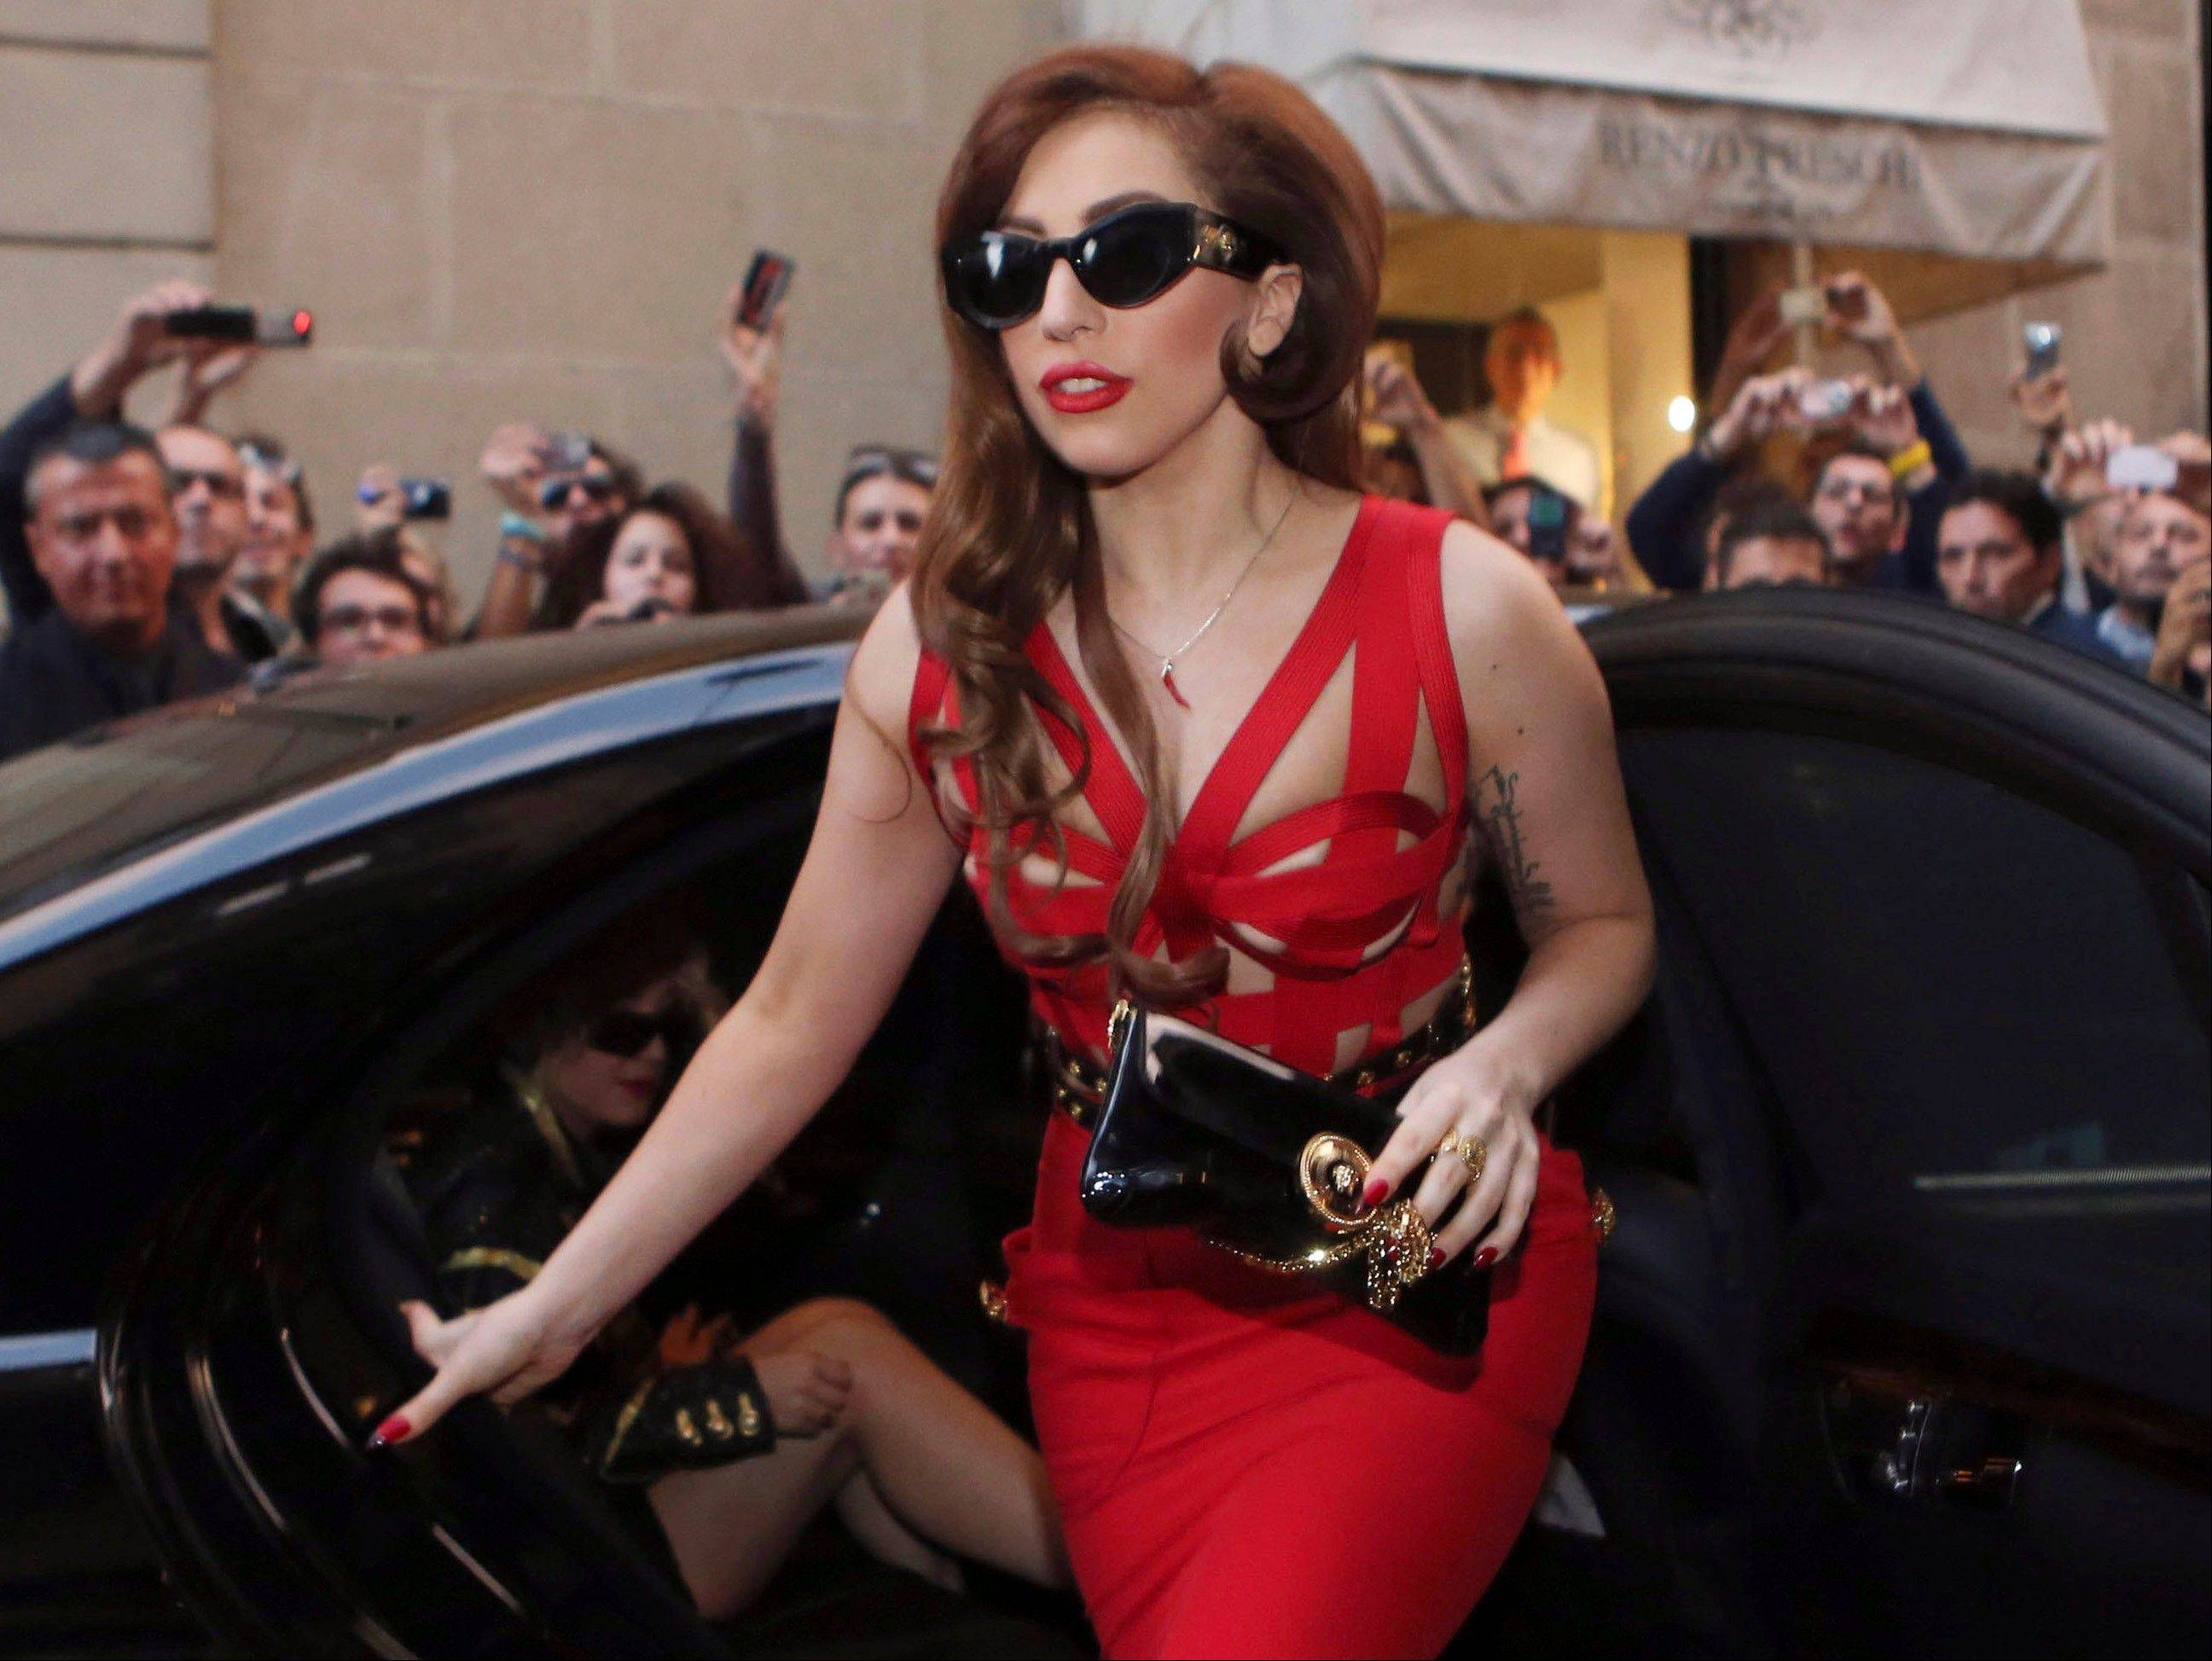 Lady Gaga is donating $1 million to the Red Cross to aid those affected by Superstorm Sandy.